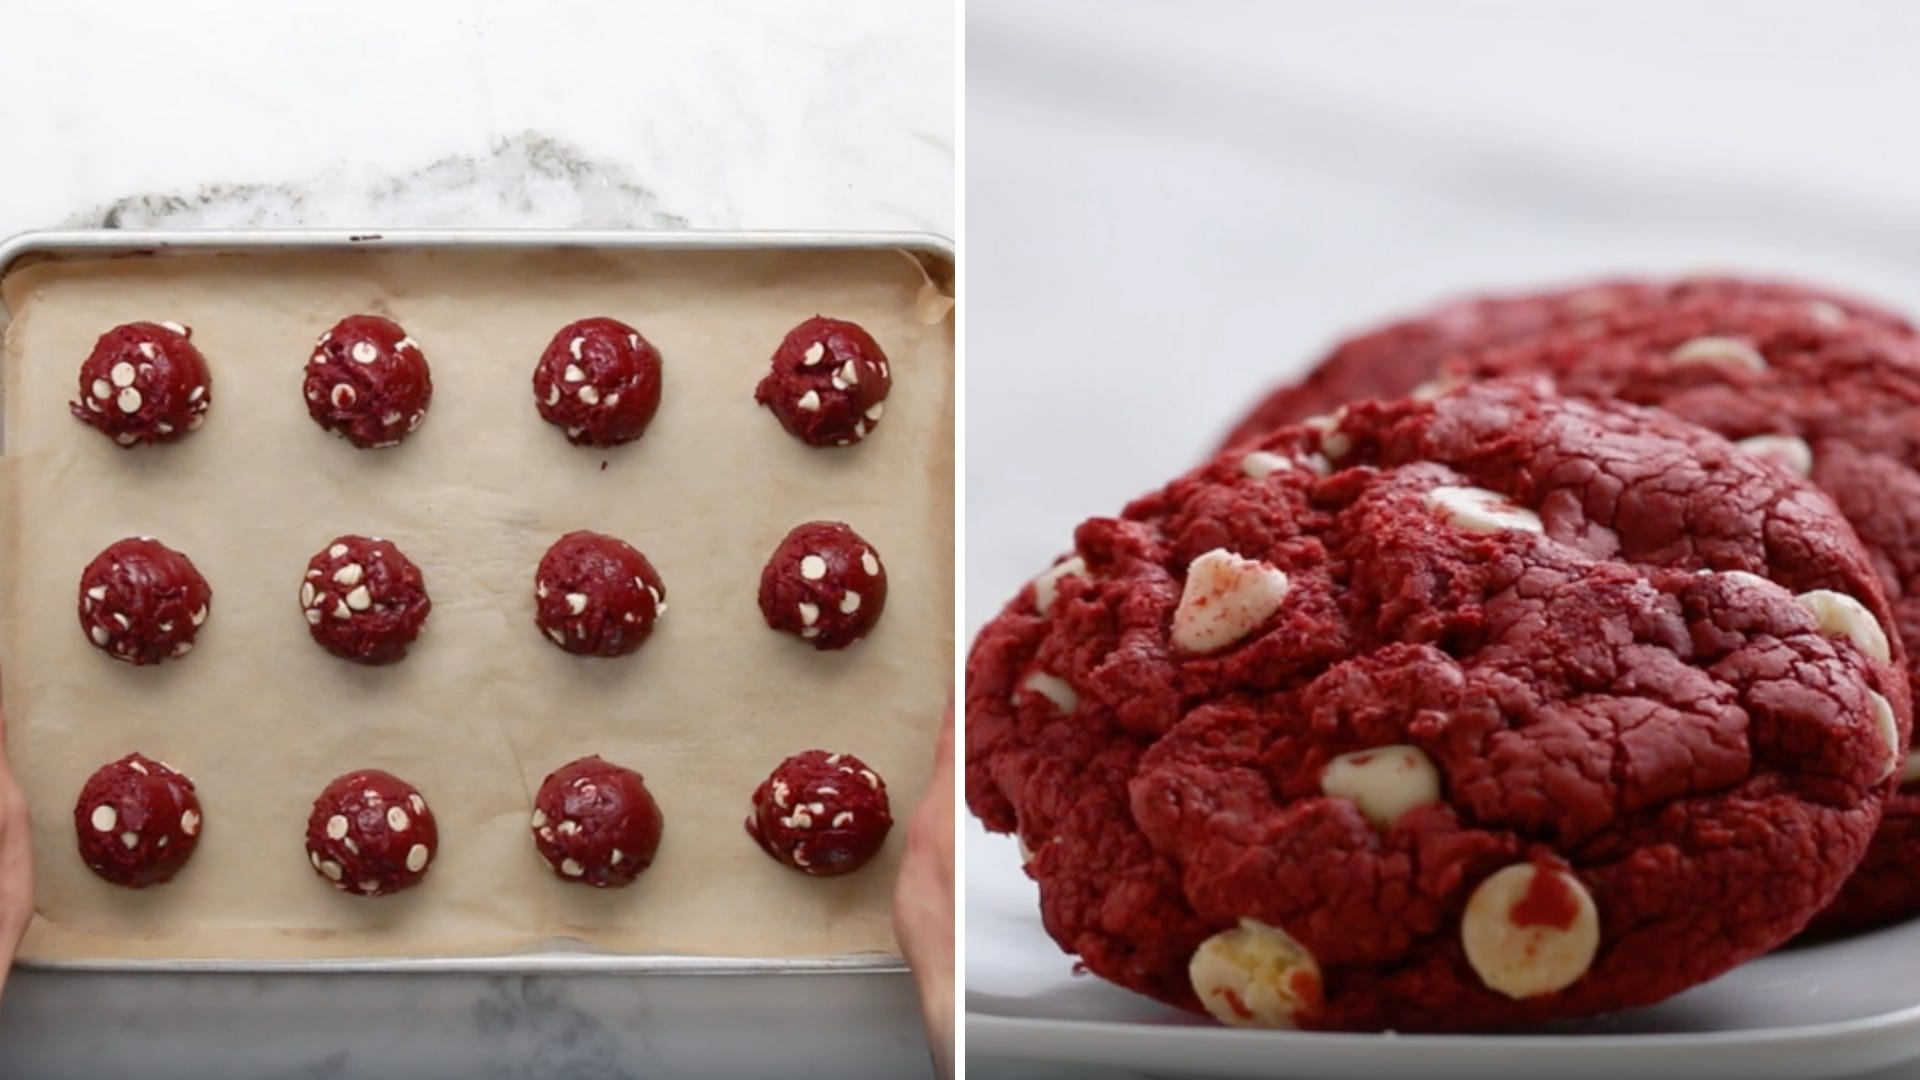 A plate of red velvet cookies next to three red velvet cookies.